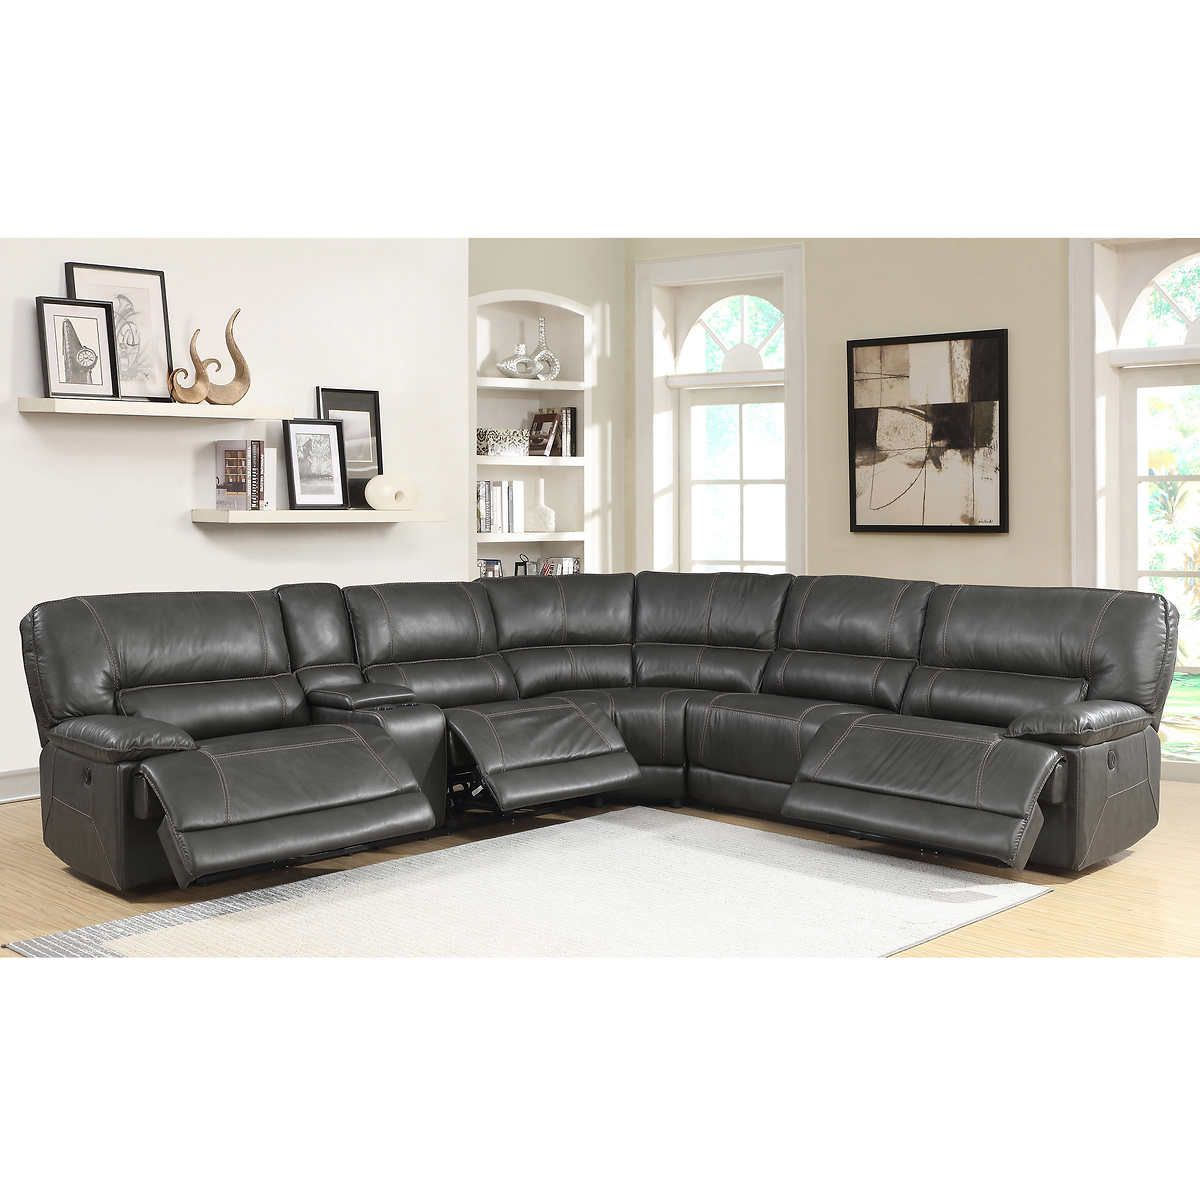 Pin By Shamira Clements On Home Decor Reclining Sectional Power Recliners Top Grain Leather